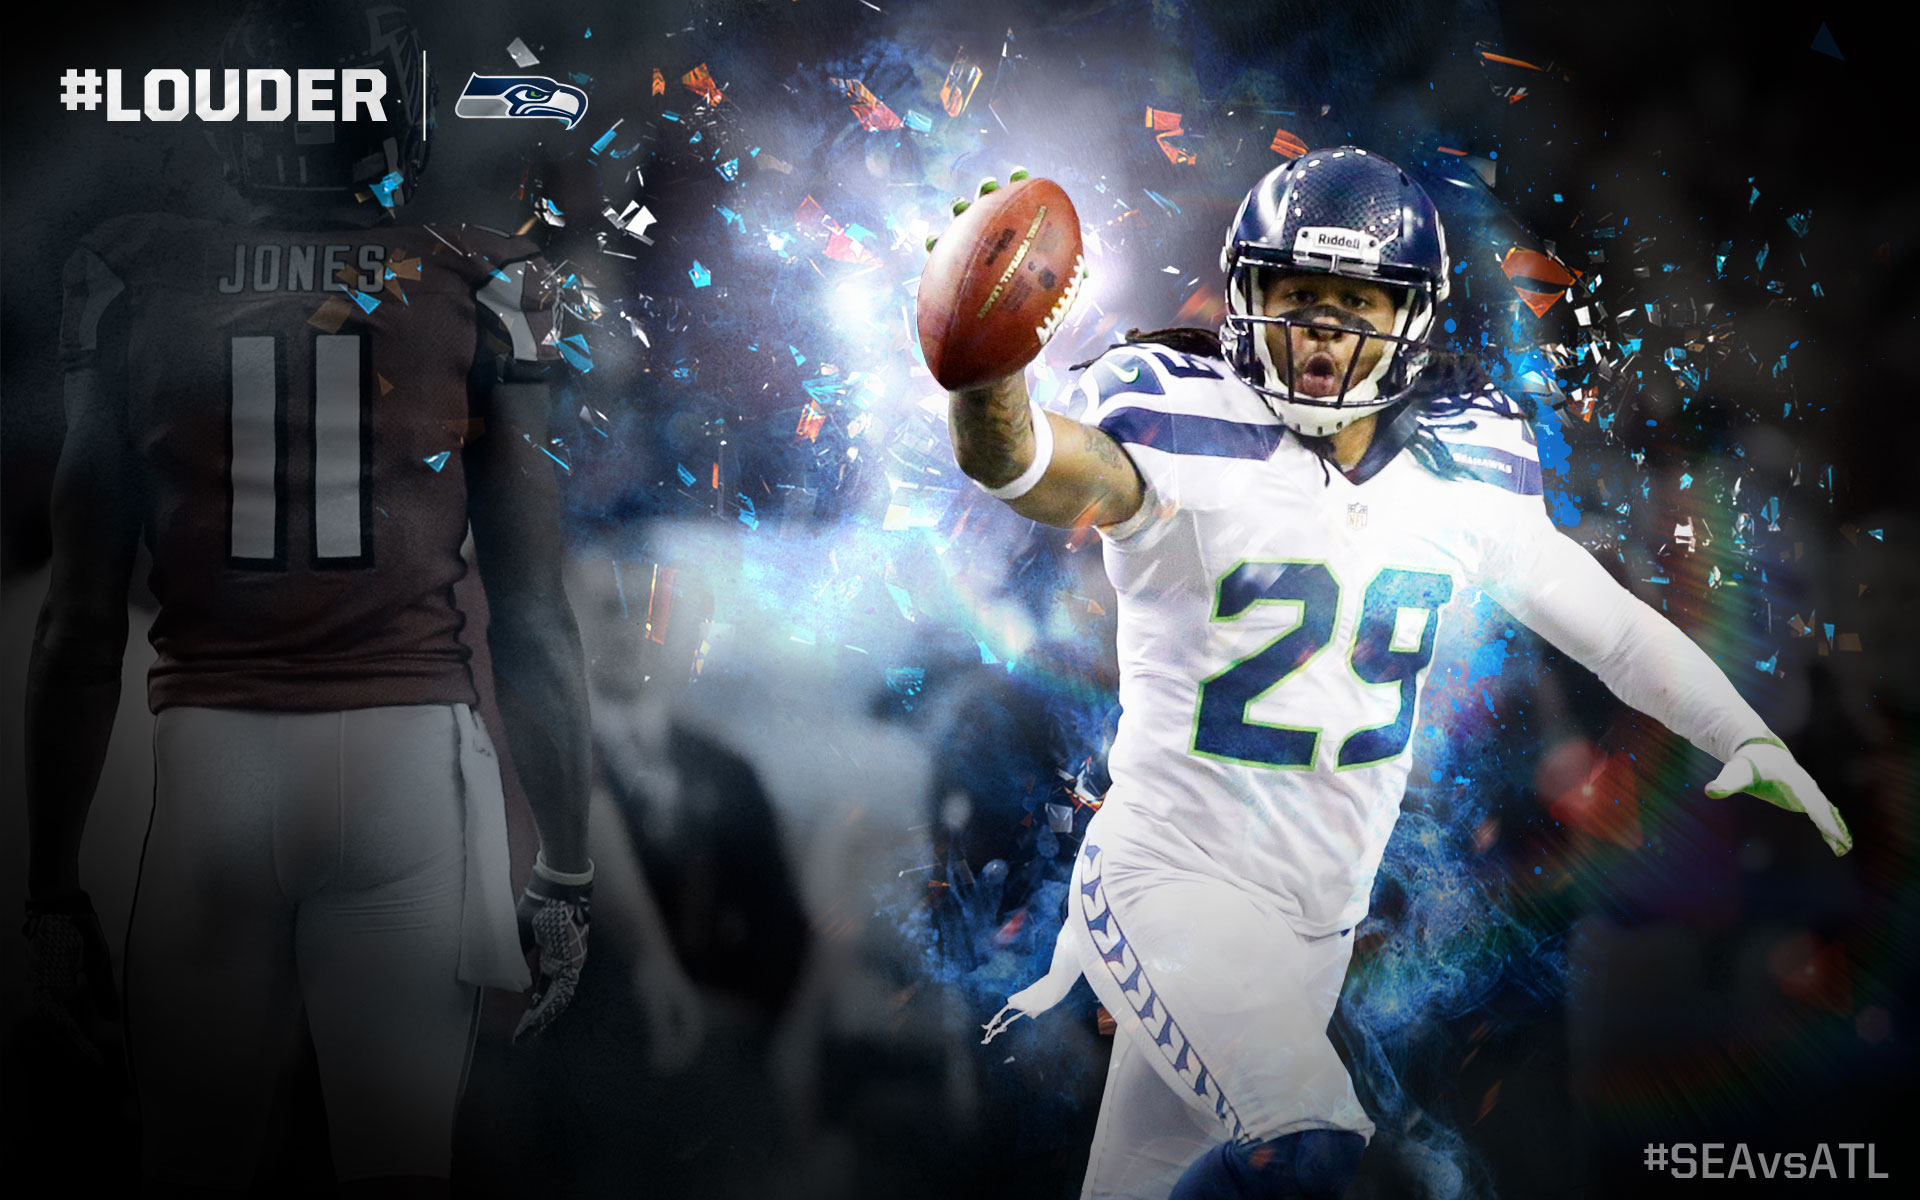 49ers Wallpaper Iphone 4 Seattle Seahawks Full Hd Wallpaper And Background Image